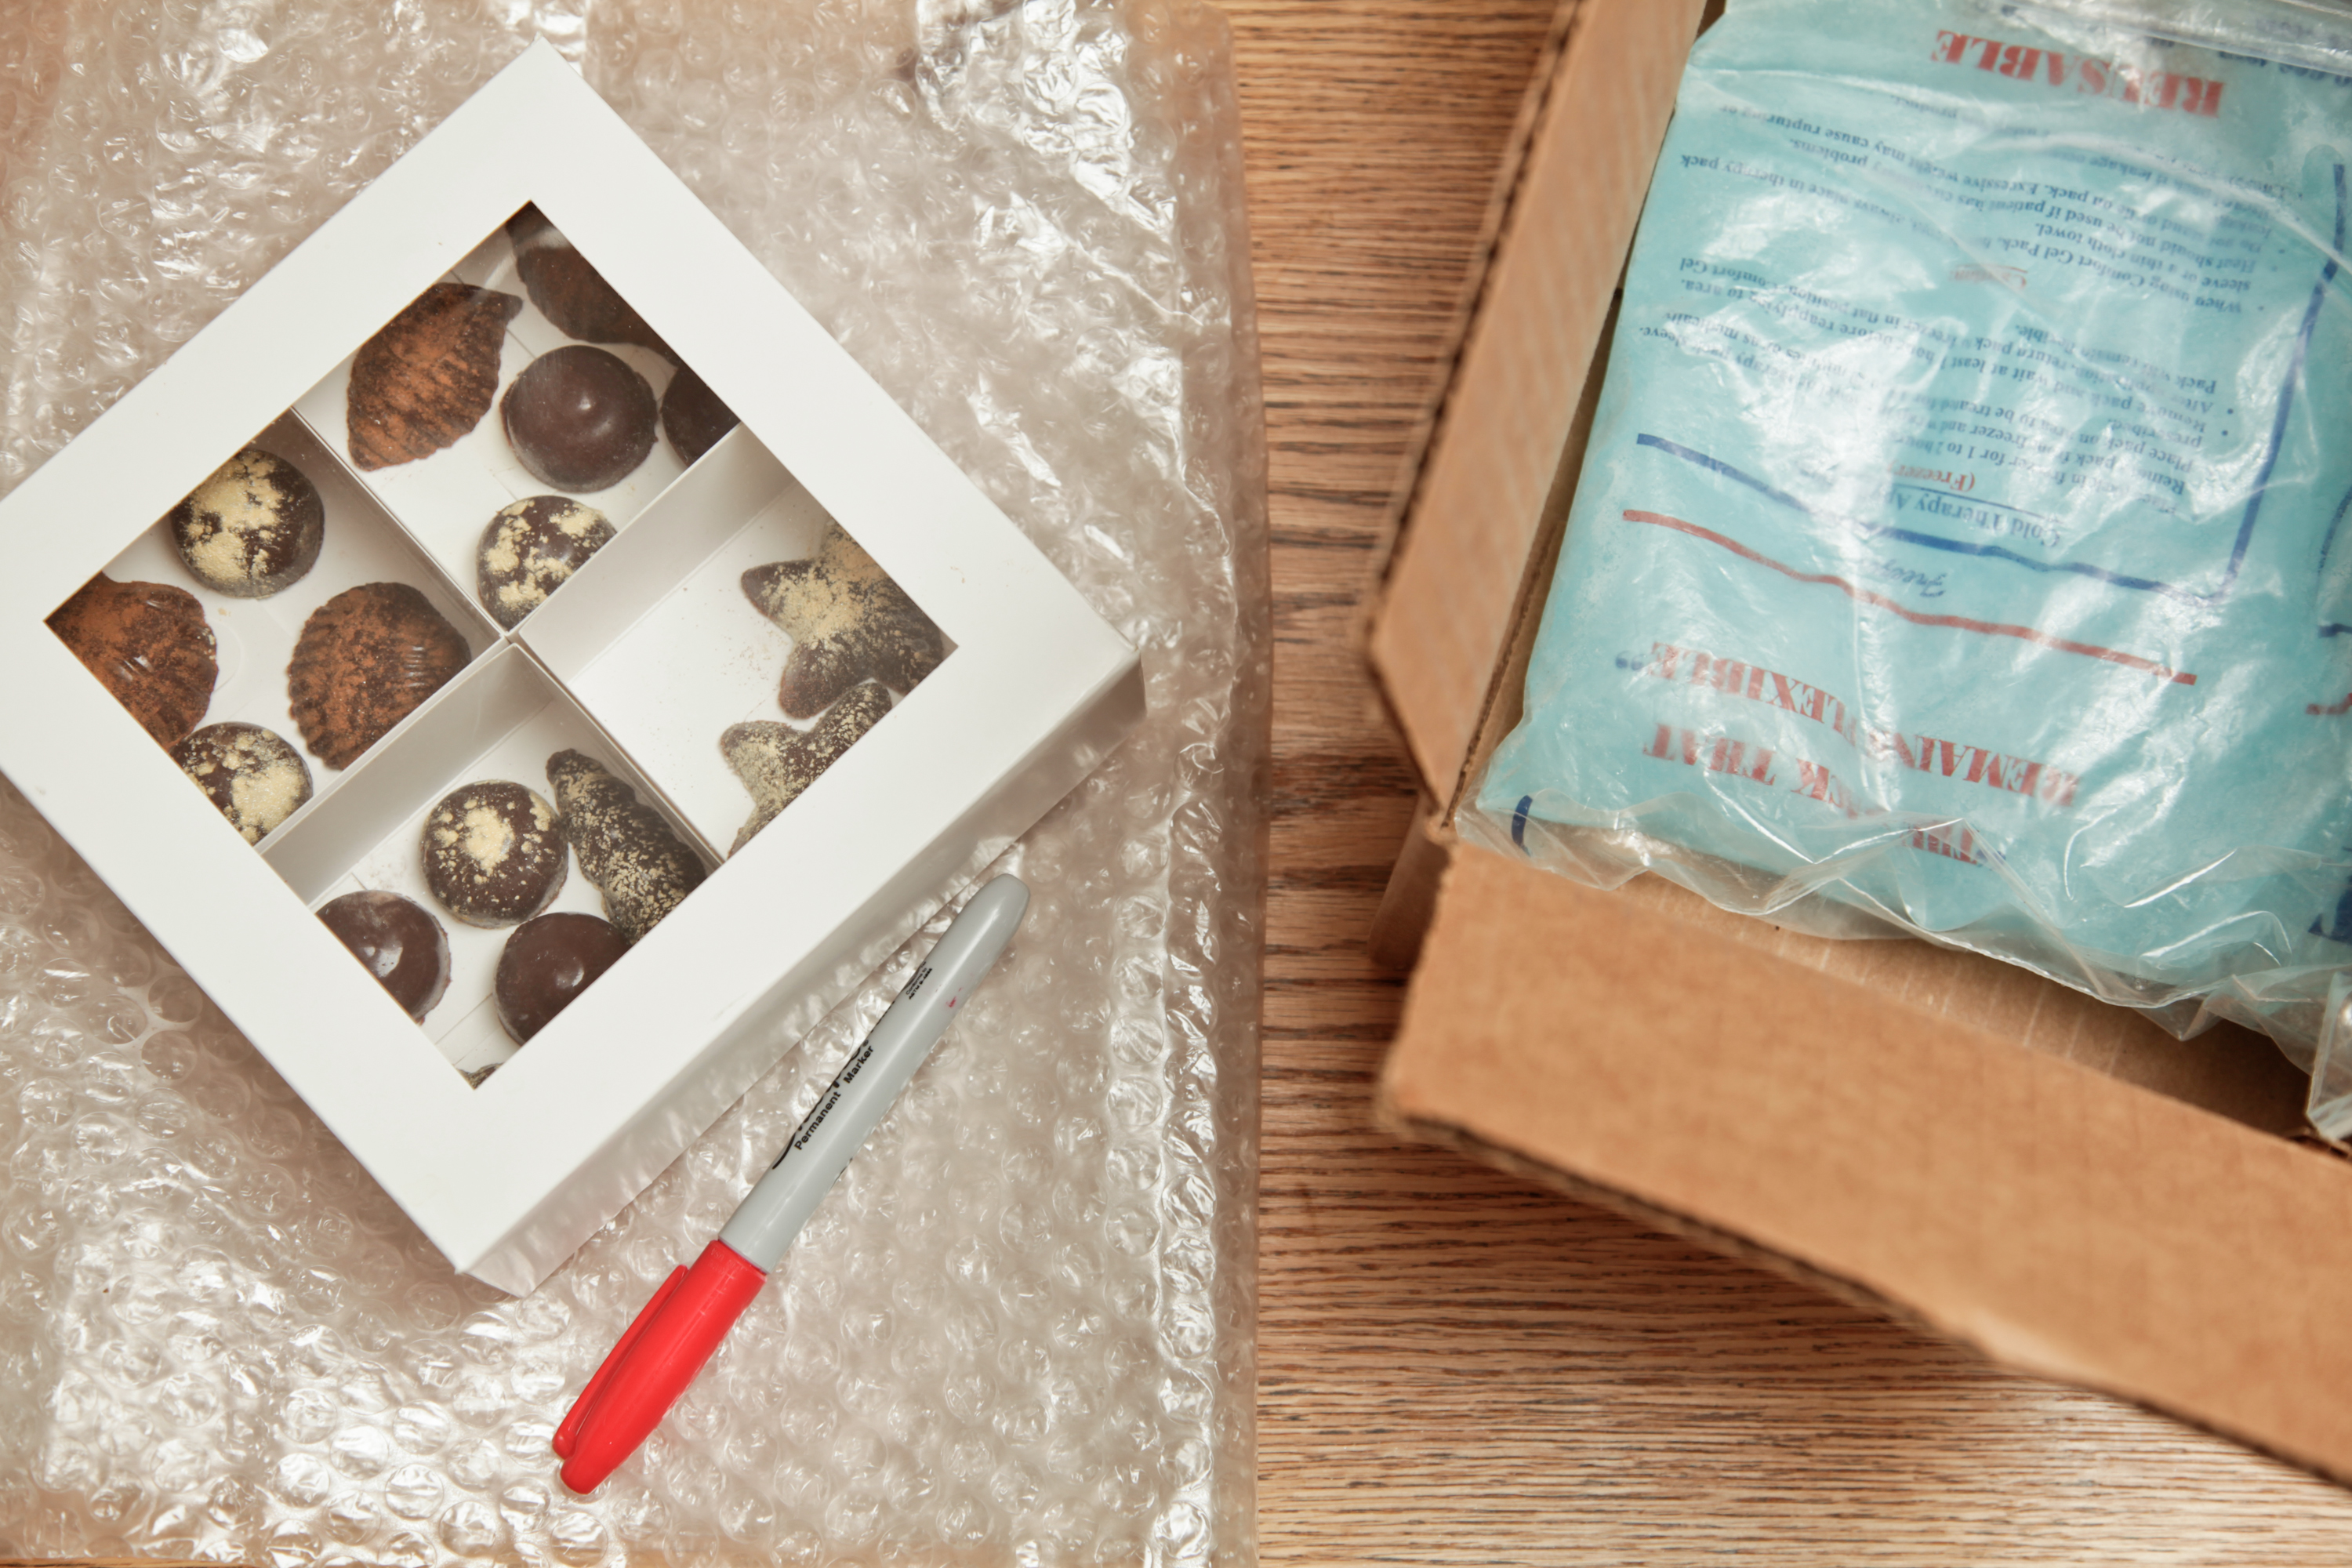 How to Mail Chocolate | Our Everyday Life